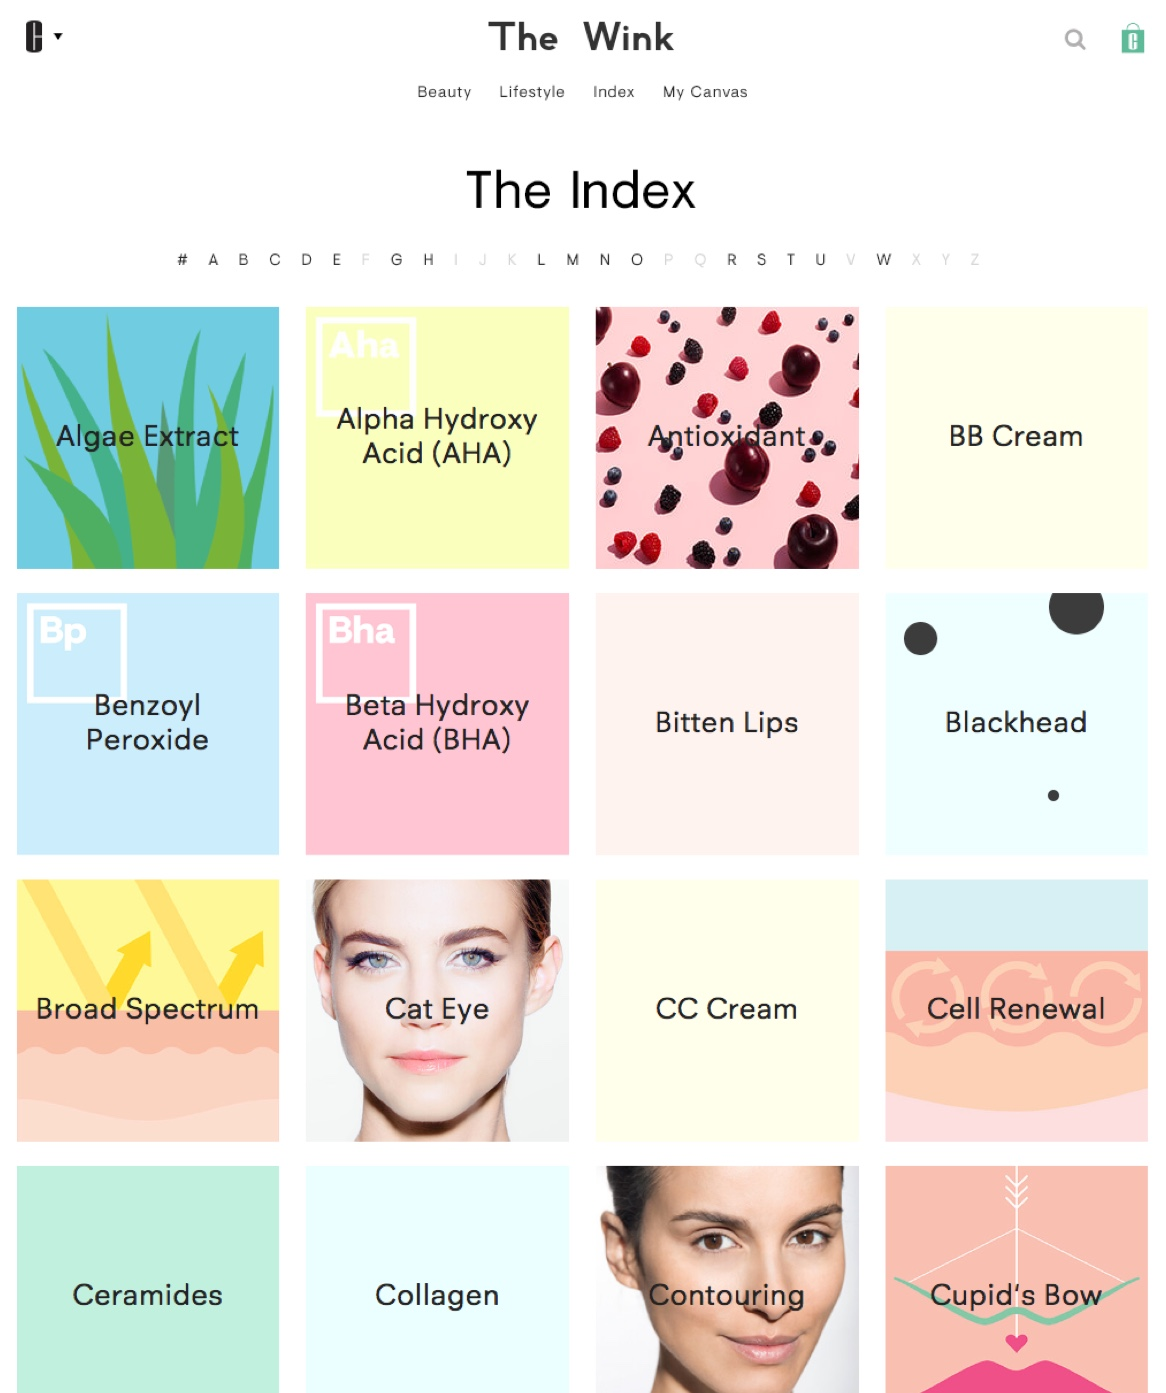 The Wink by Clinique Beauty Index